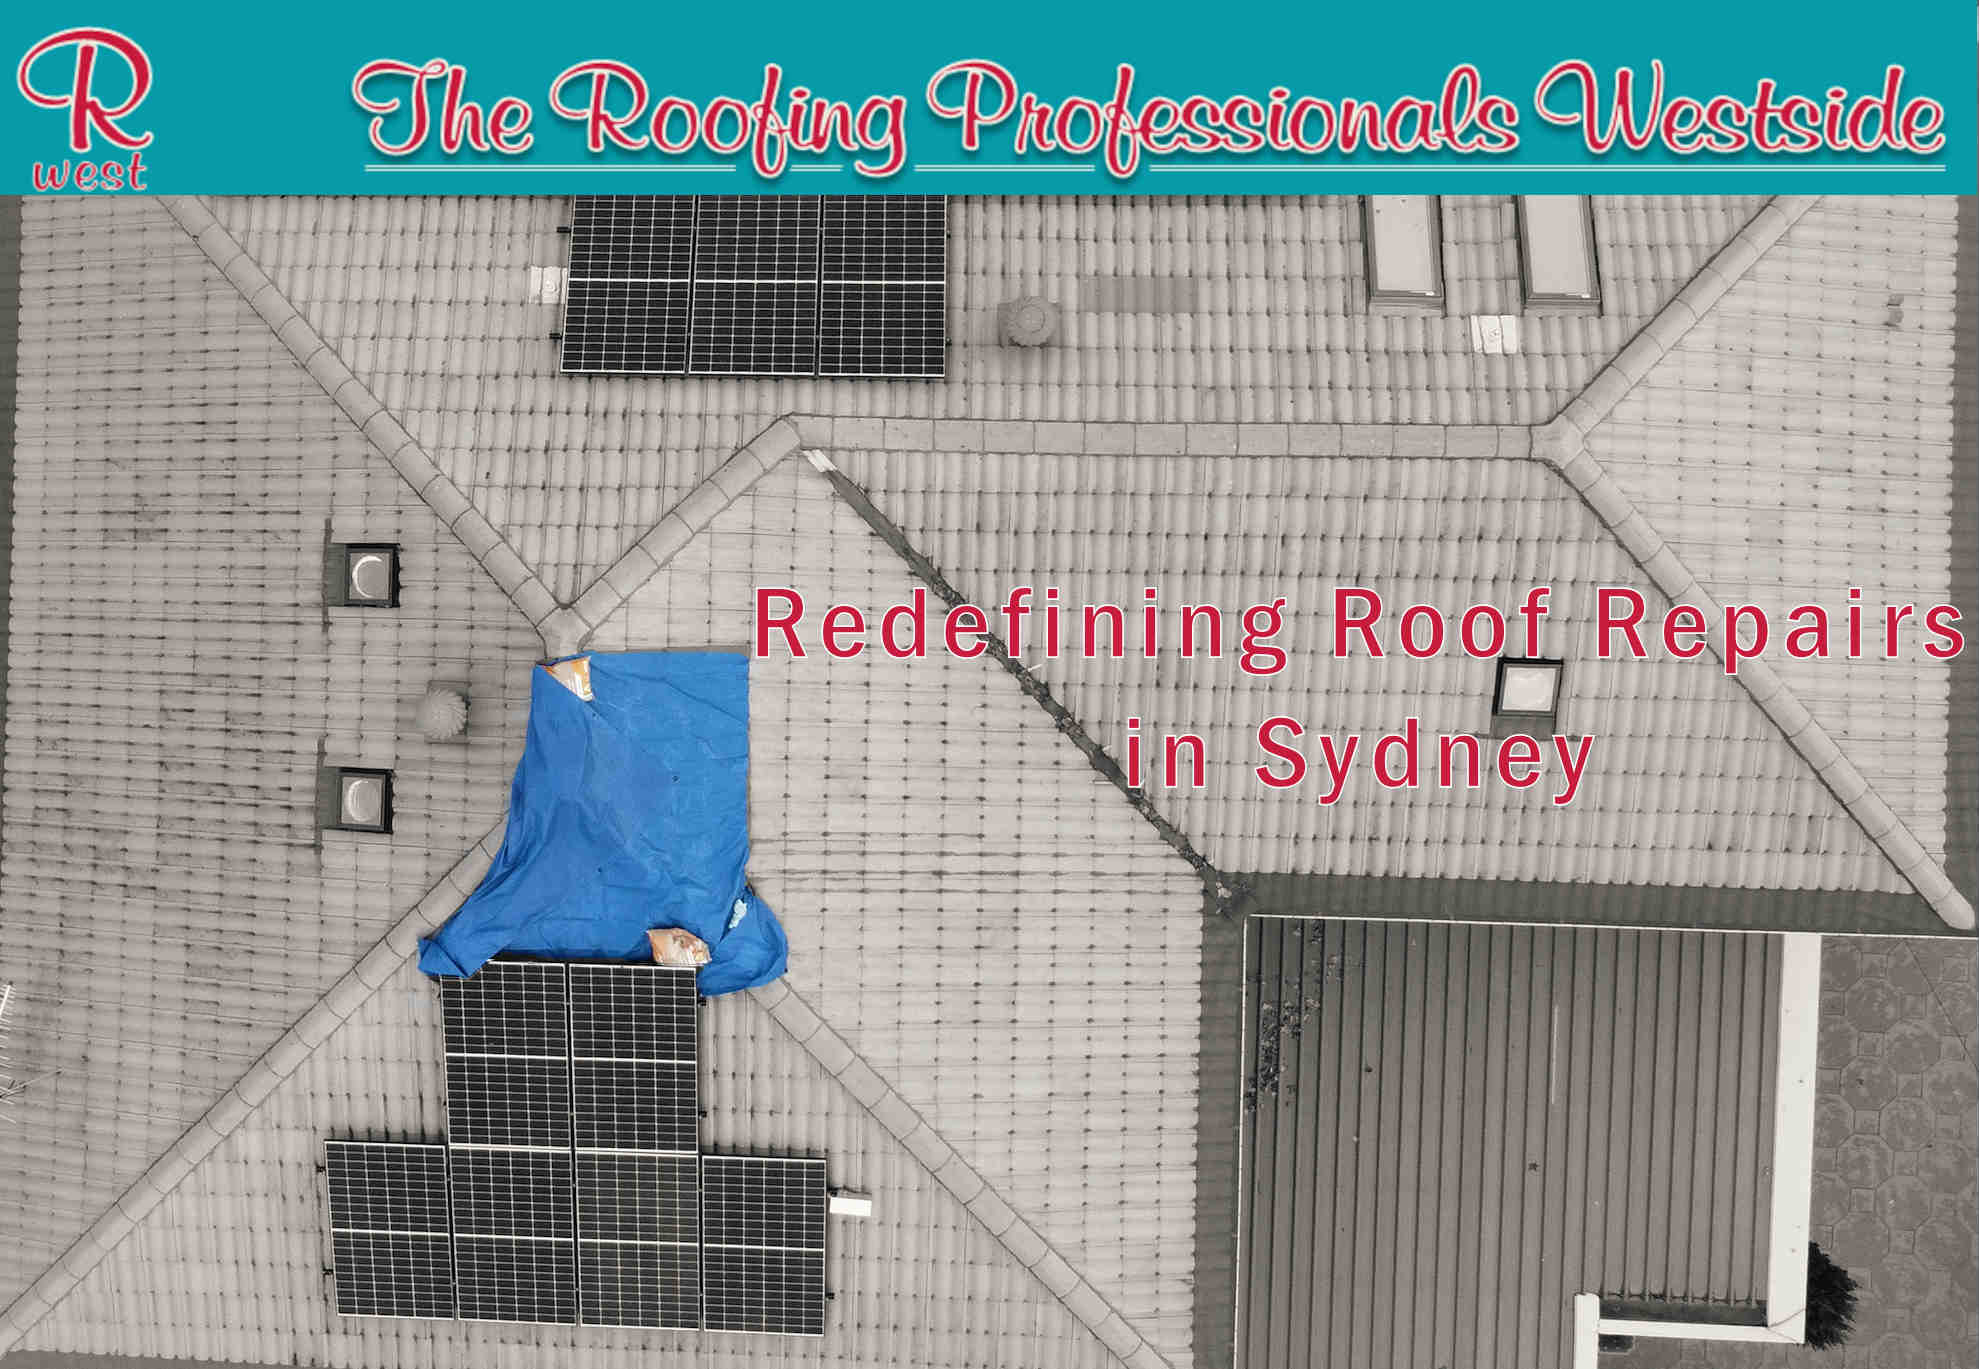 The Roofing Professionals Westside redefining roof repairs in Sydney